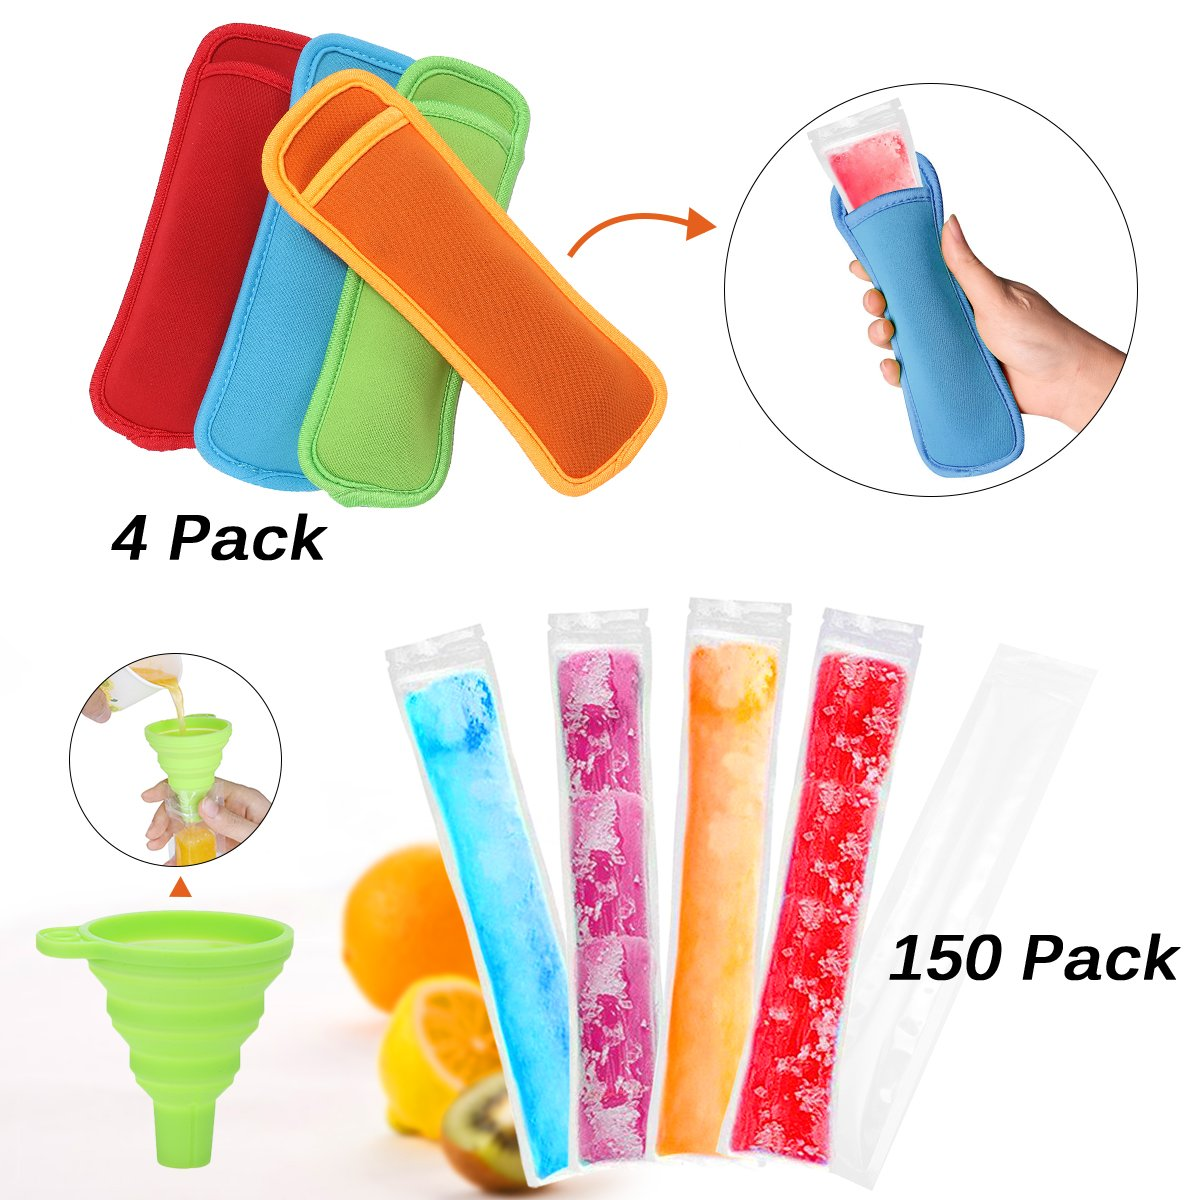 Janolia Ice Popsicle Mold Bags, 150 Pcs Ice Pop Bags with Popsicle Sleeves, BPA Free Freezer Tubes With Zip Seals, Come with a Funnel, for DIY Ice Pop, Healthy, Full Vitamin Snacks JANOLIAvhdfe8290